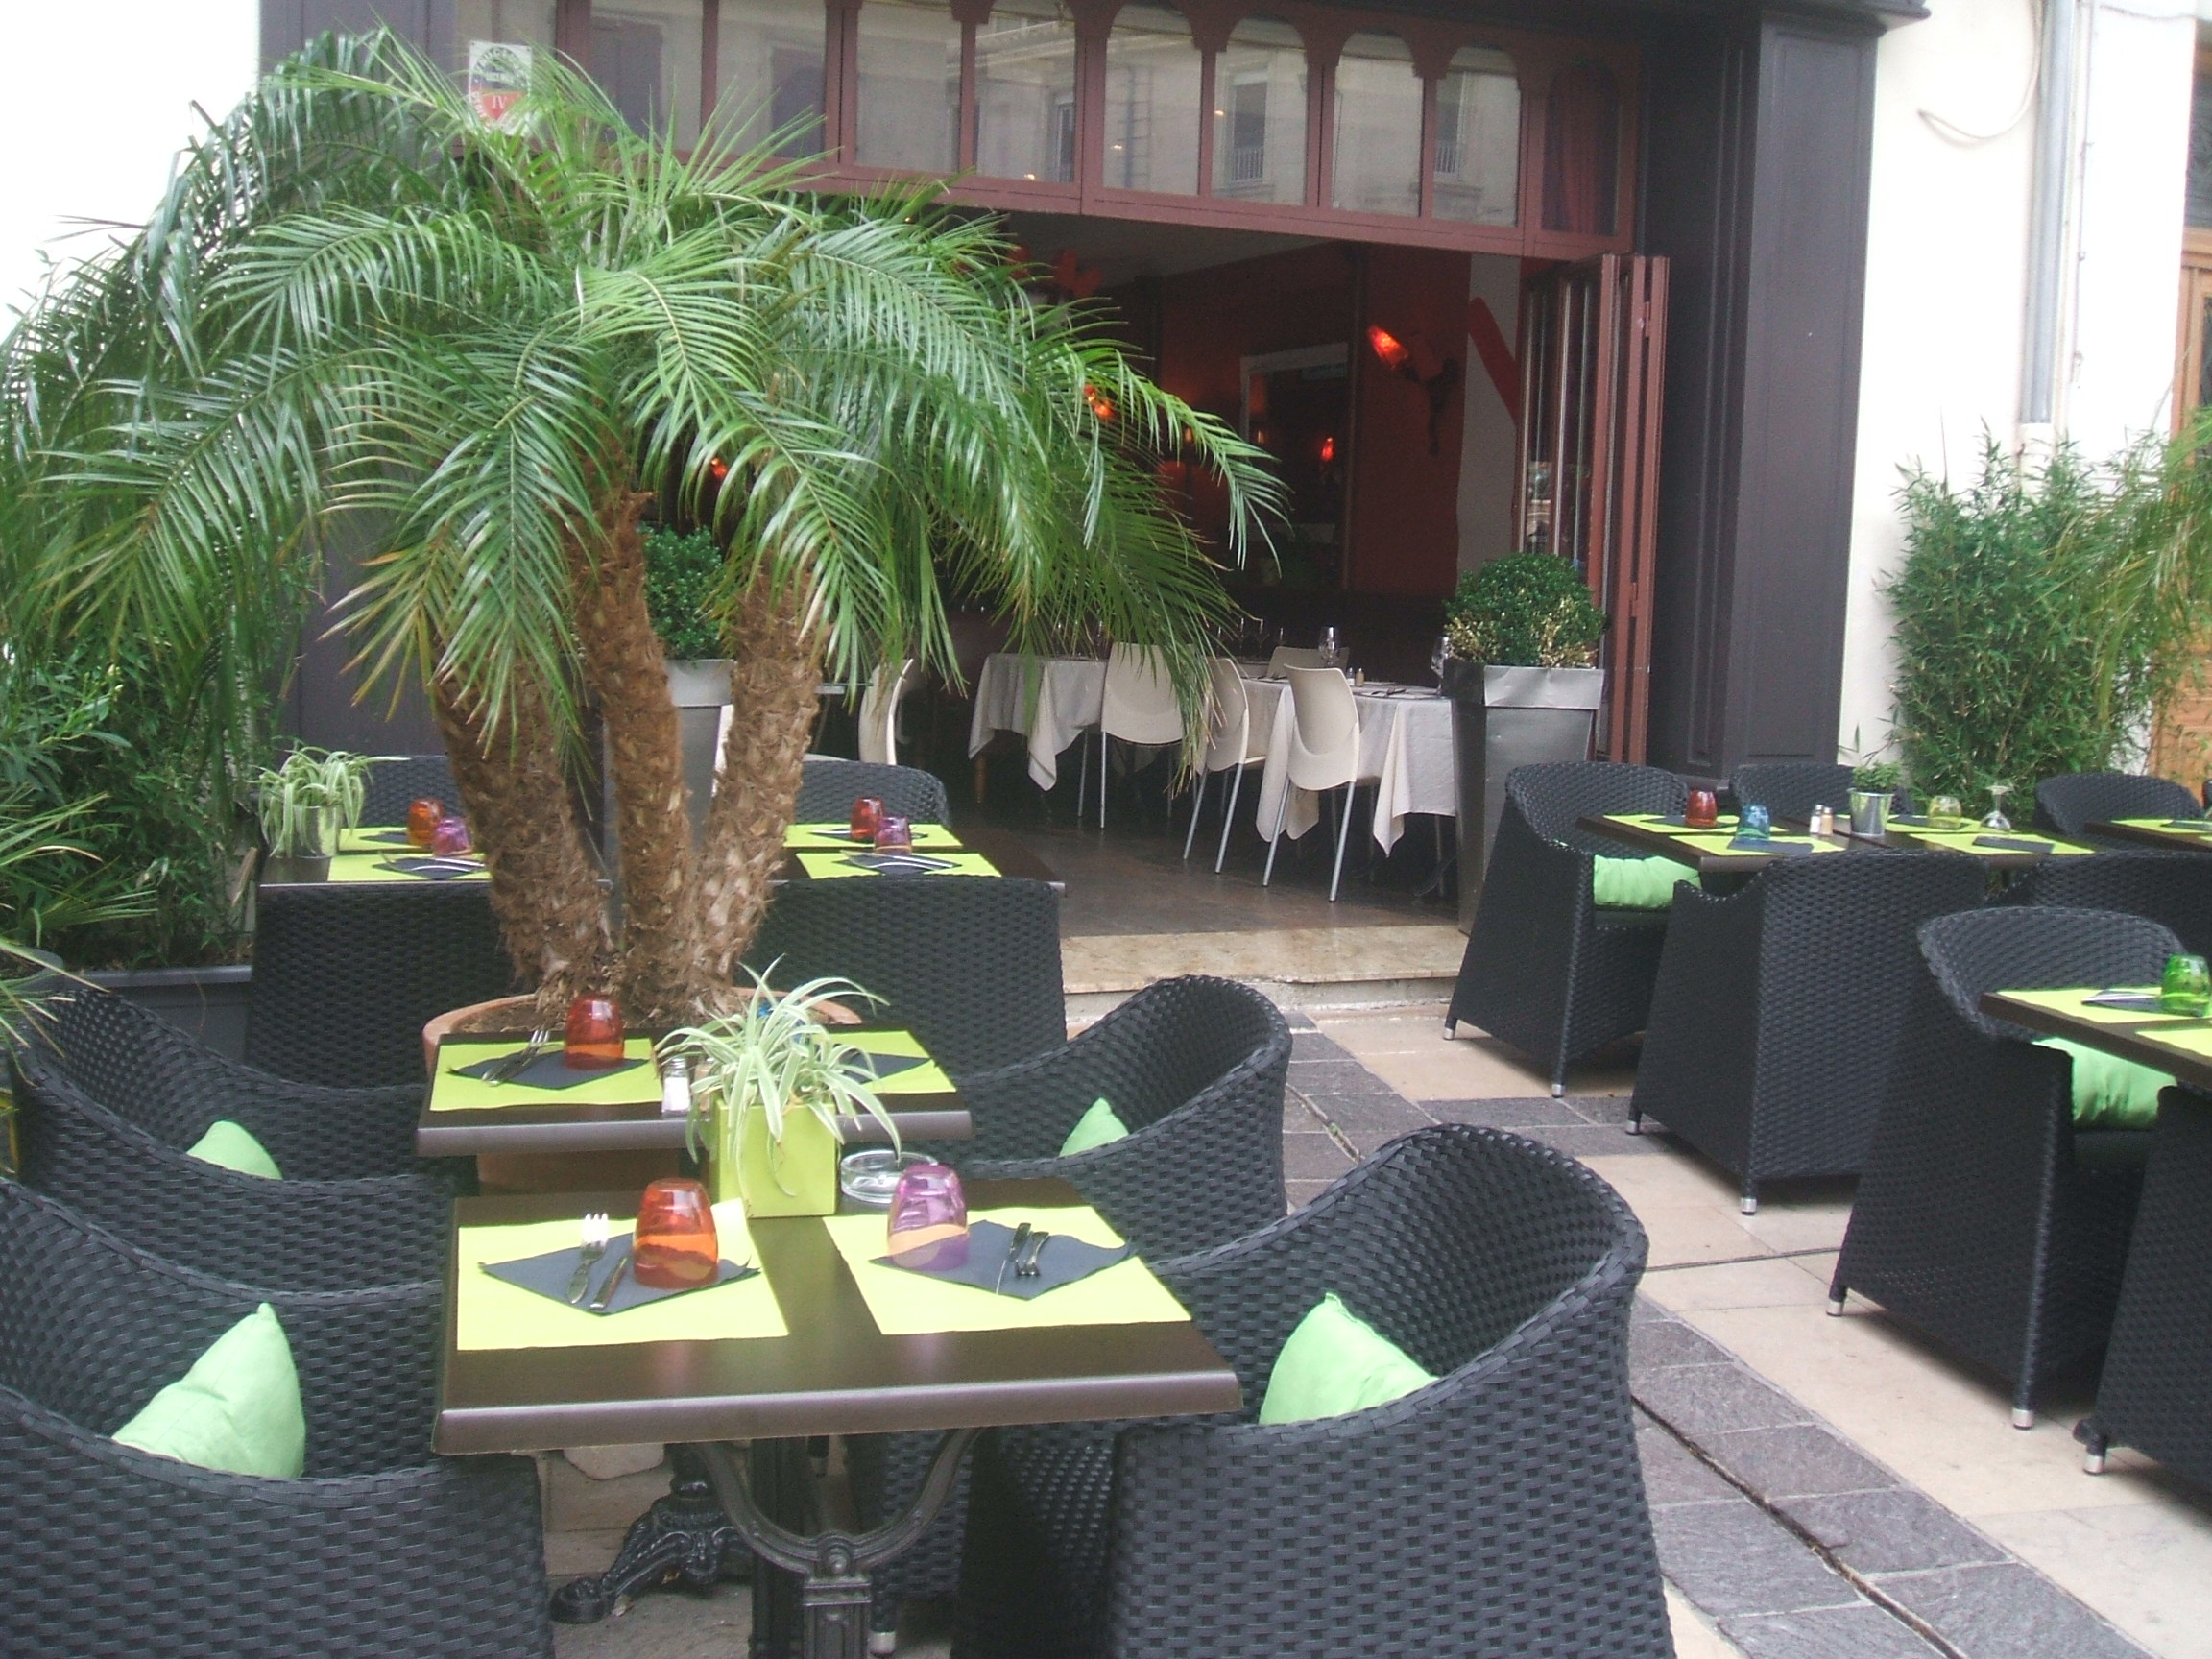 Am nagement int rieur et ext rieur au restaurant le crillon for Mobilier terrasse